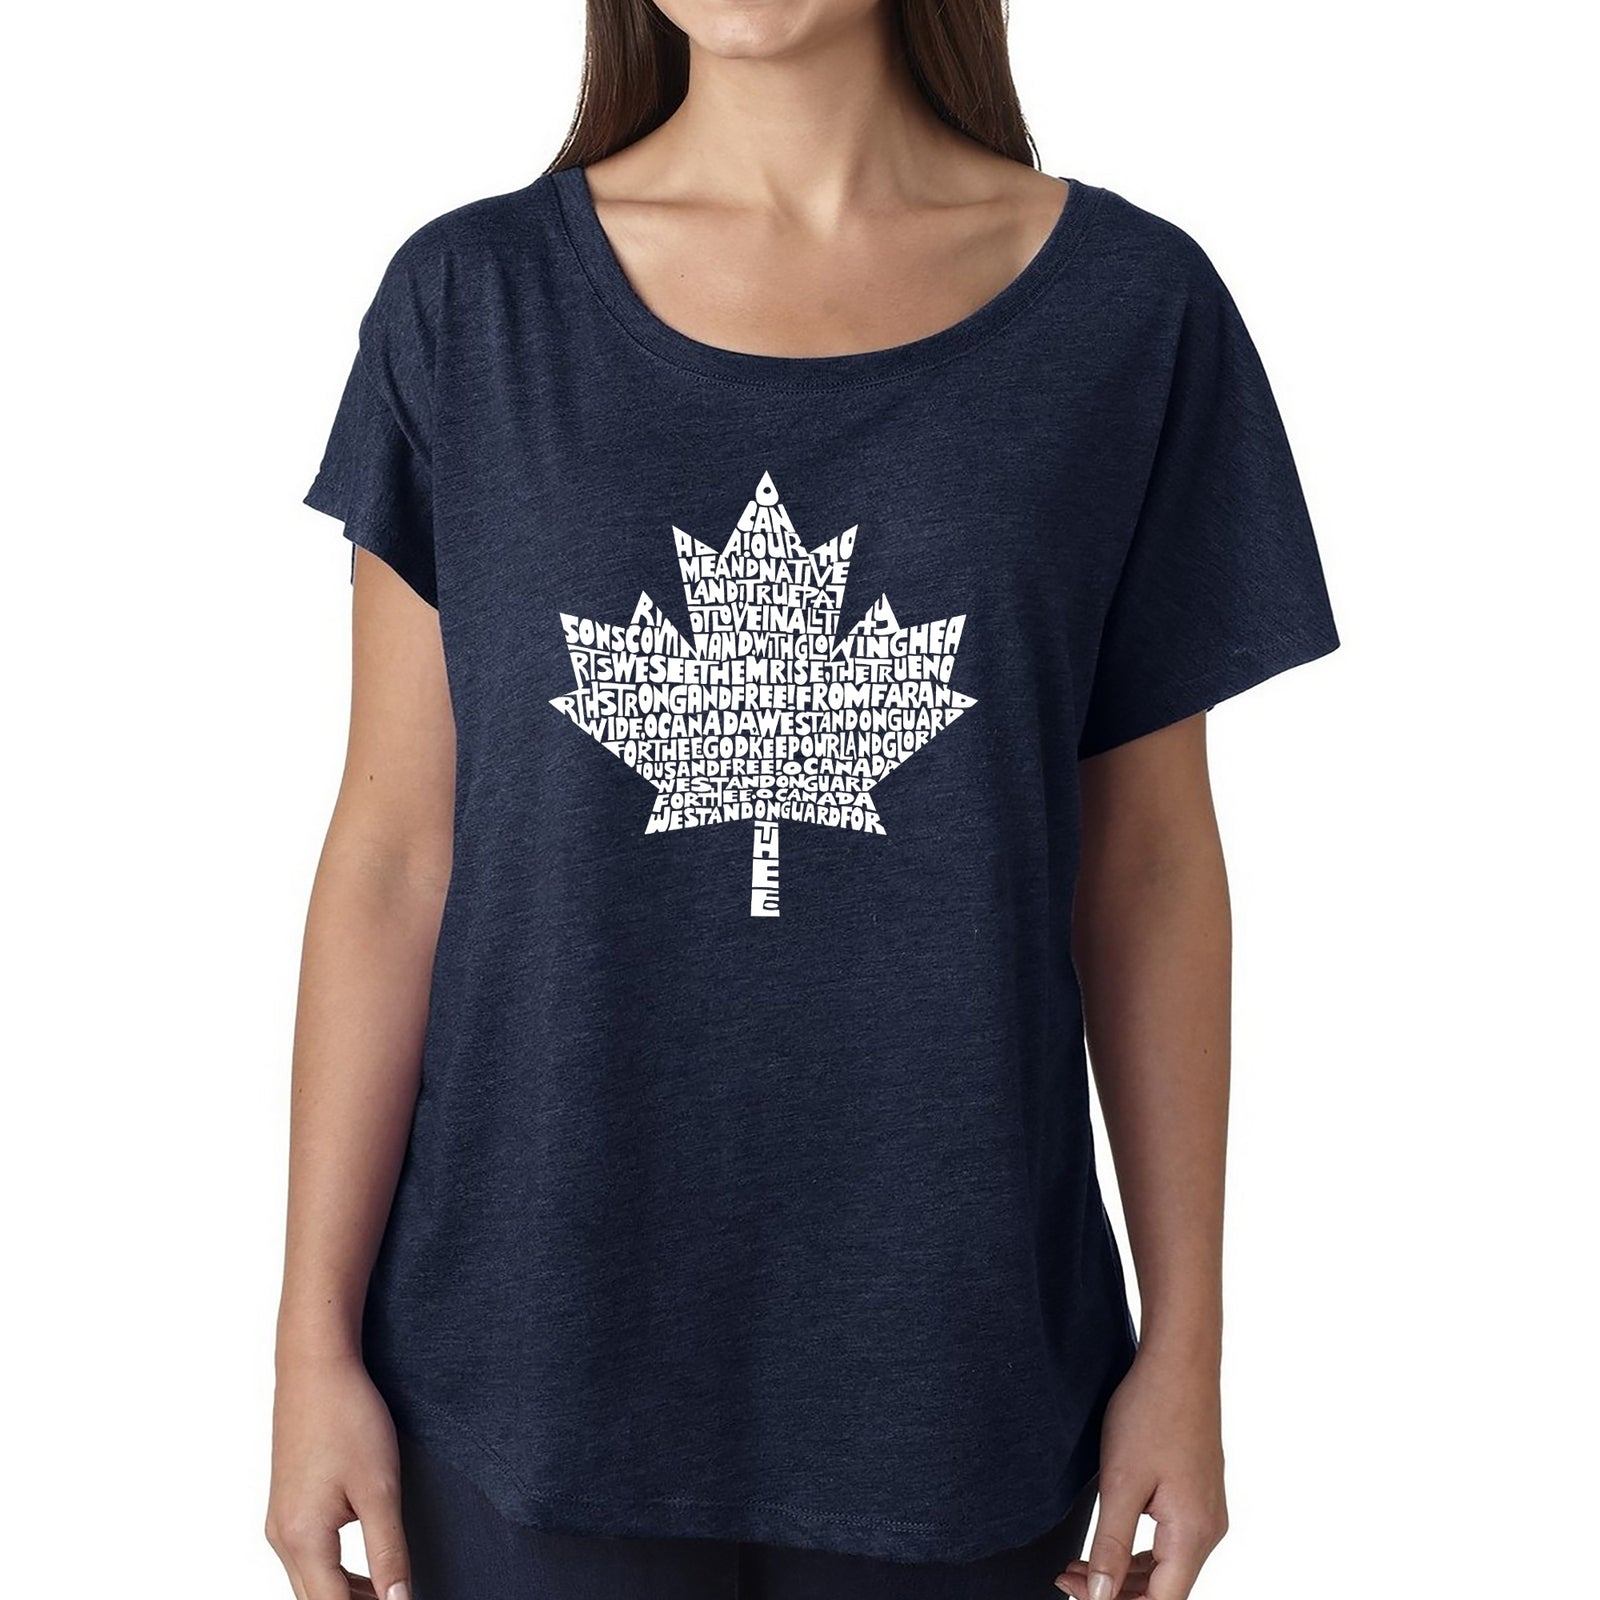 Women's Loose Fit Dolman Cut Word Art Shirt - CANADIAN NATIONAL ANTHEM